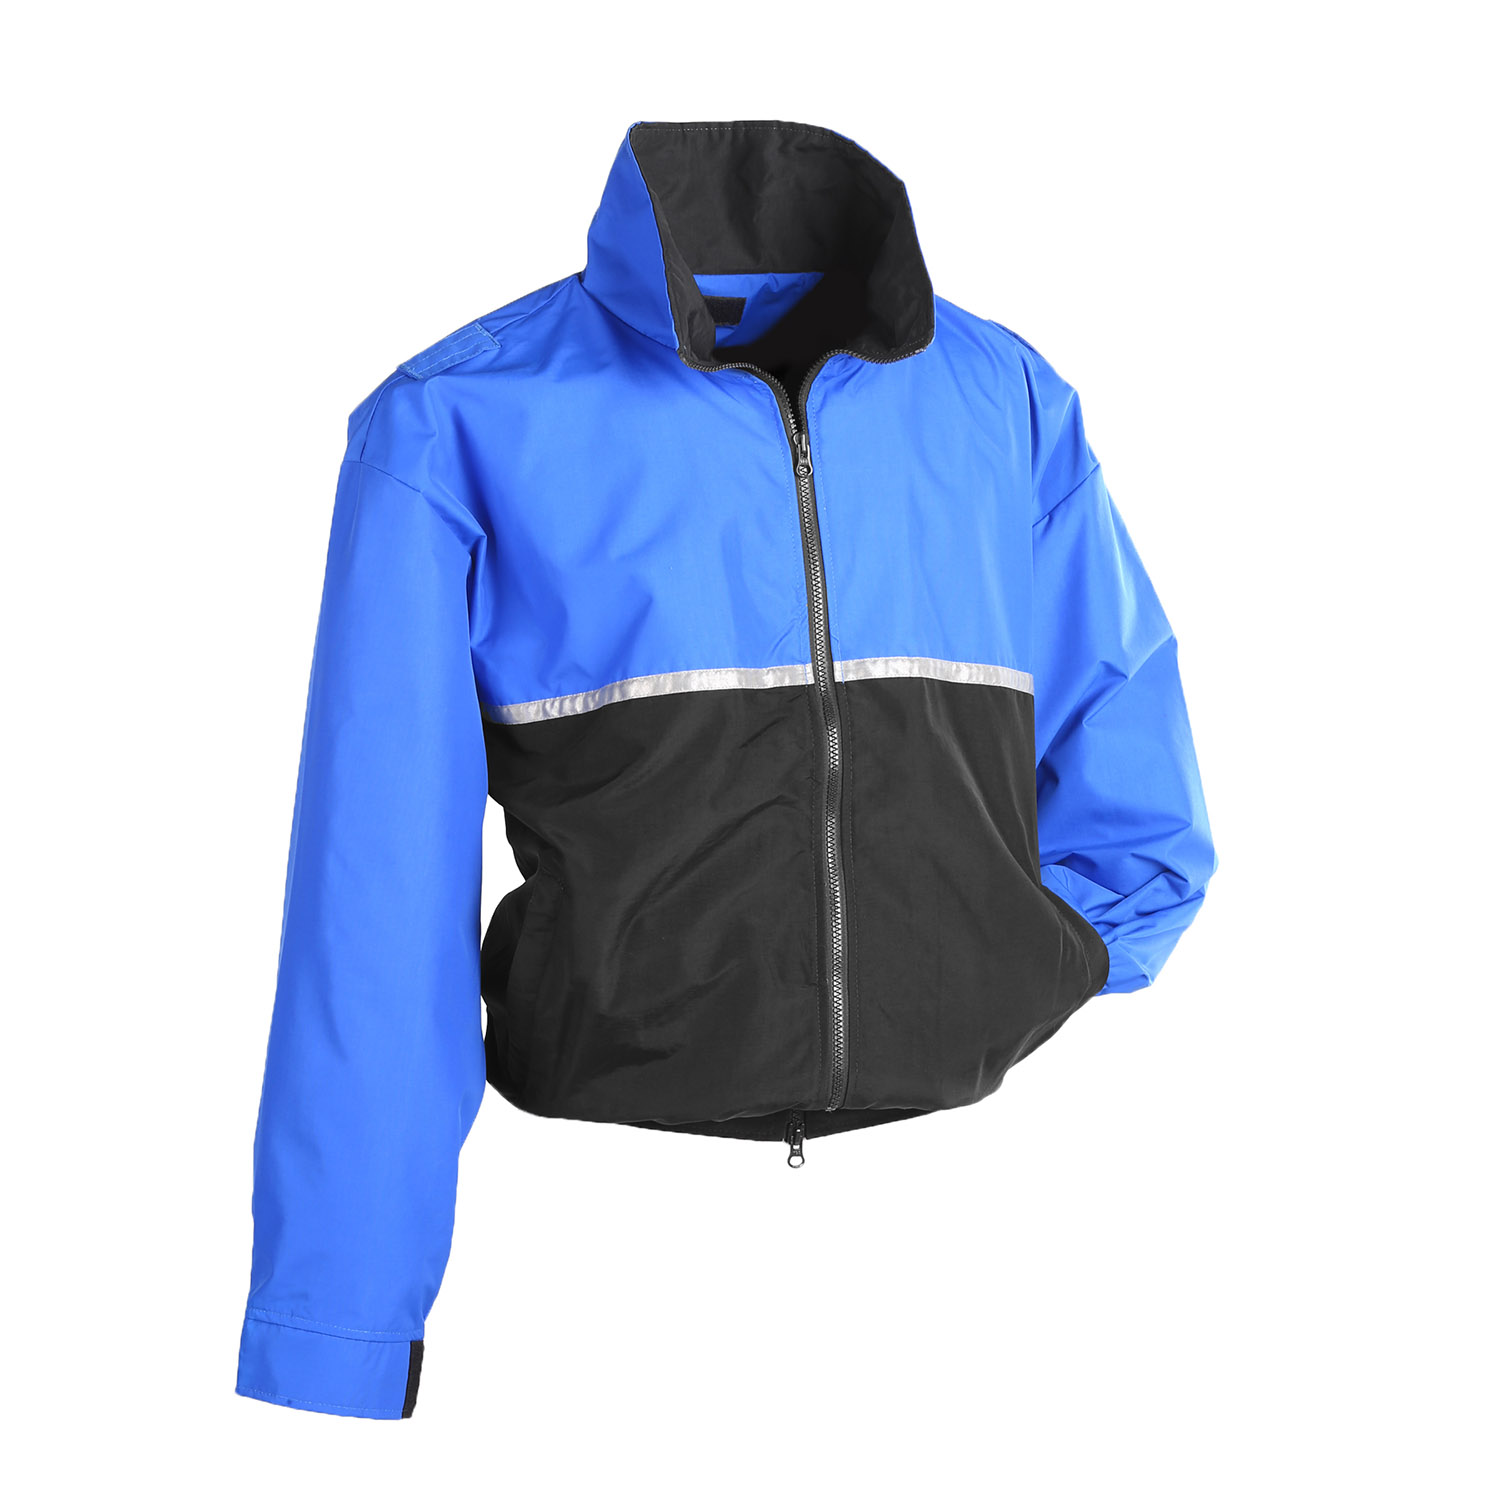 LawPro Lightweight Bike Patrol Jacket